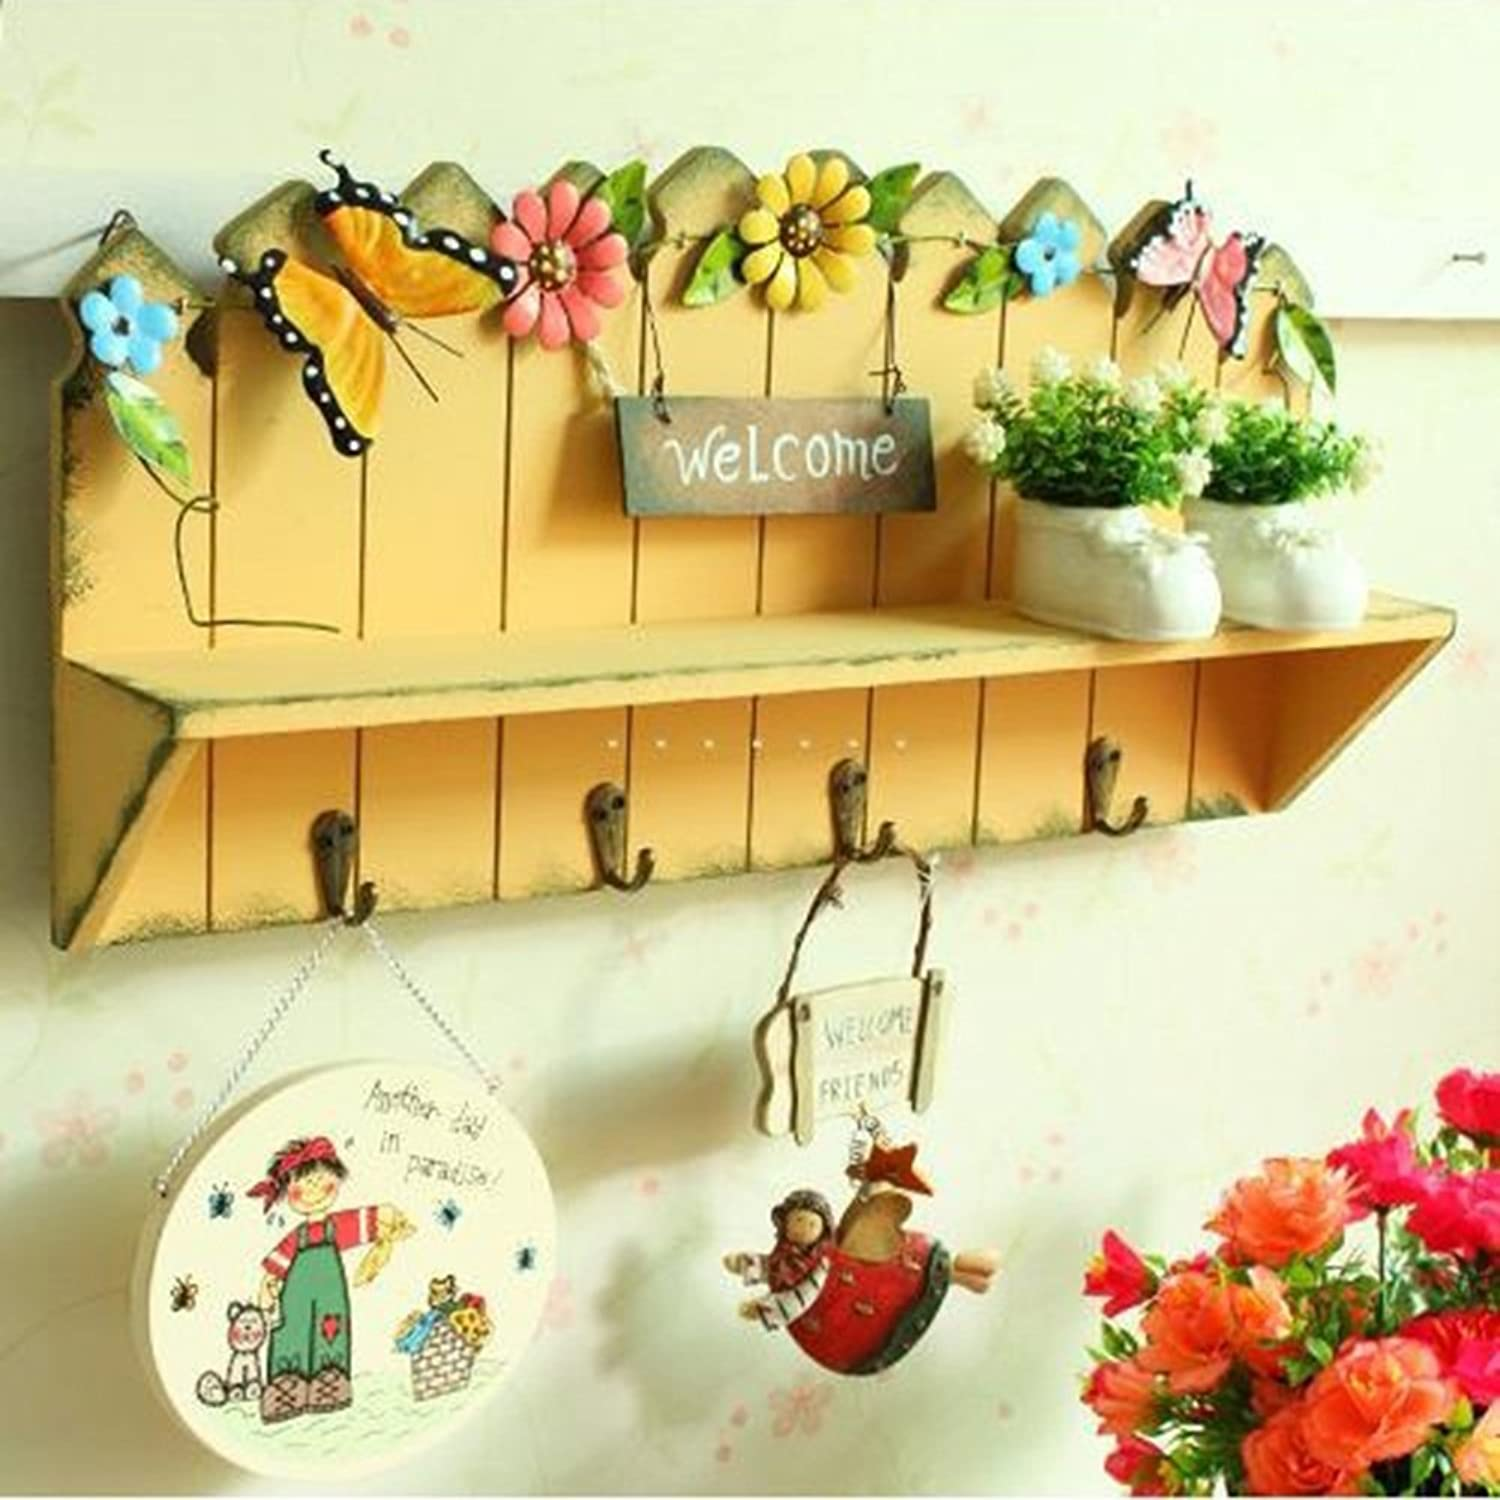 ZEMIN Wall Coat Rack Clothes Hat Hanger Holder Hooks Shelf Wood Welcome Fashion Style, Yelllow, 47.5x9x23CM (color   Yellow, Size   1 Piece)